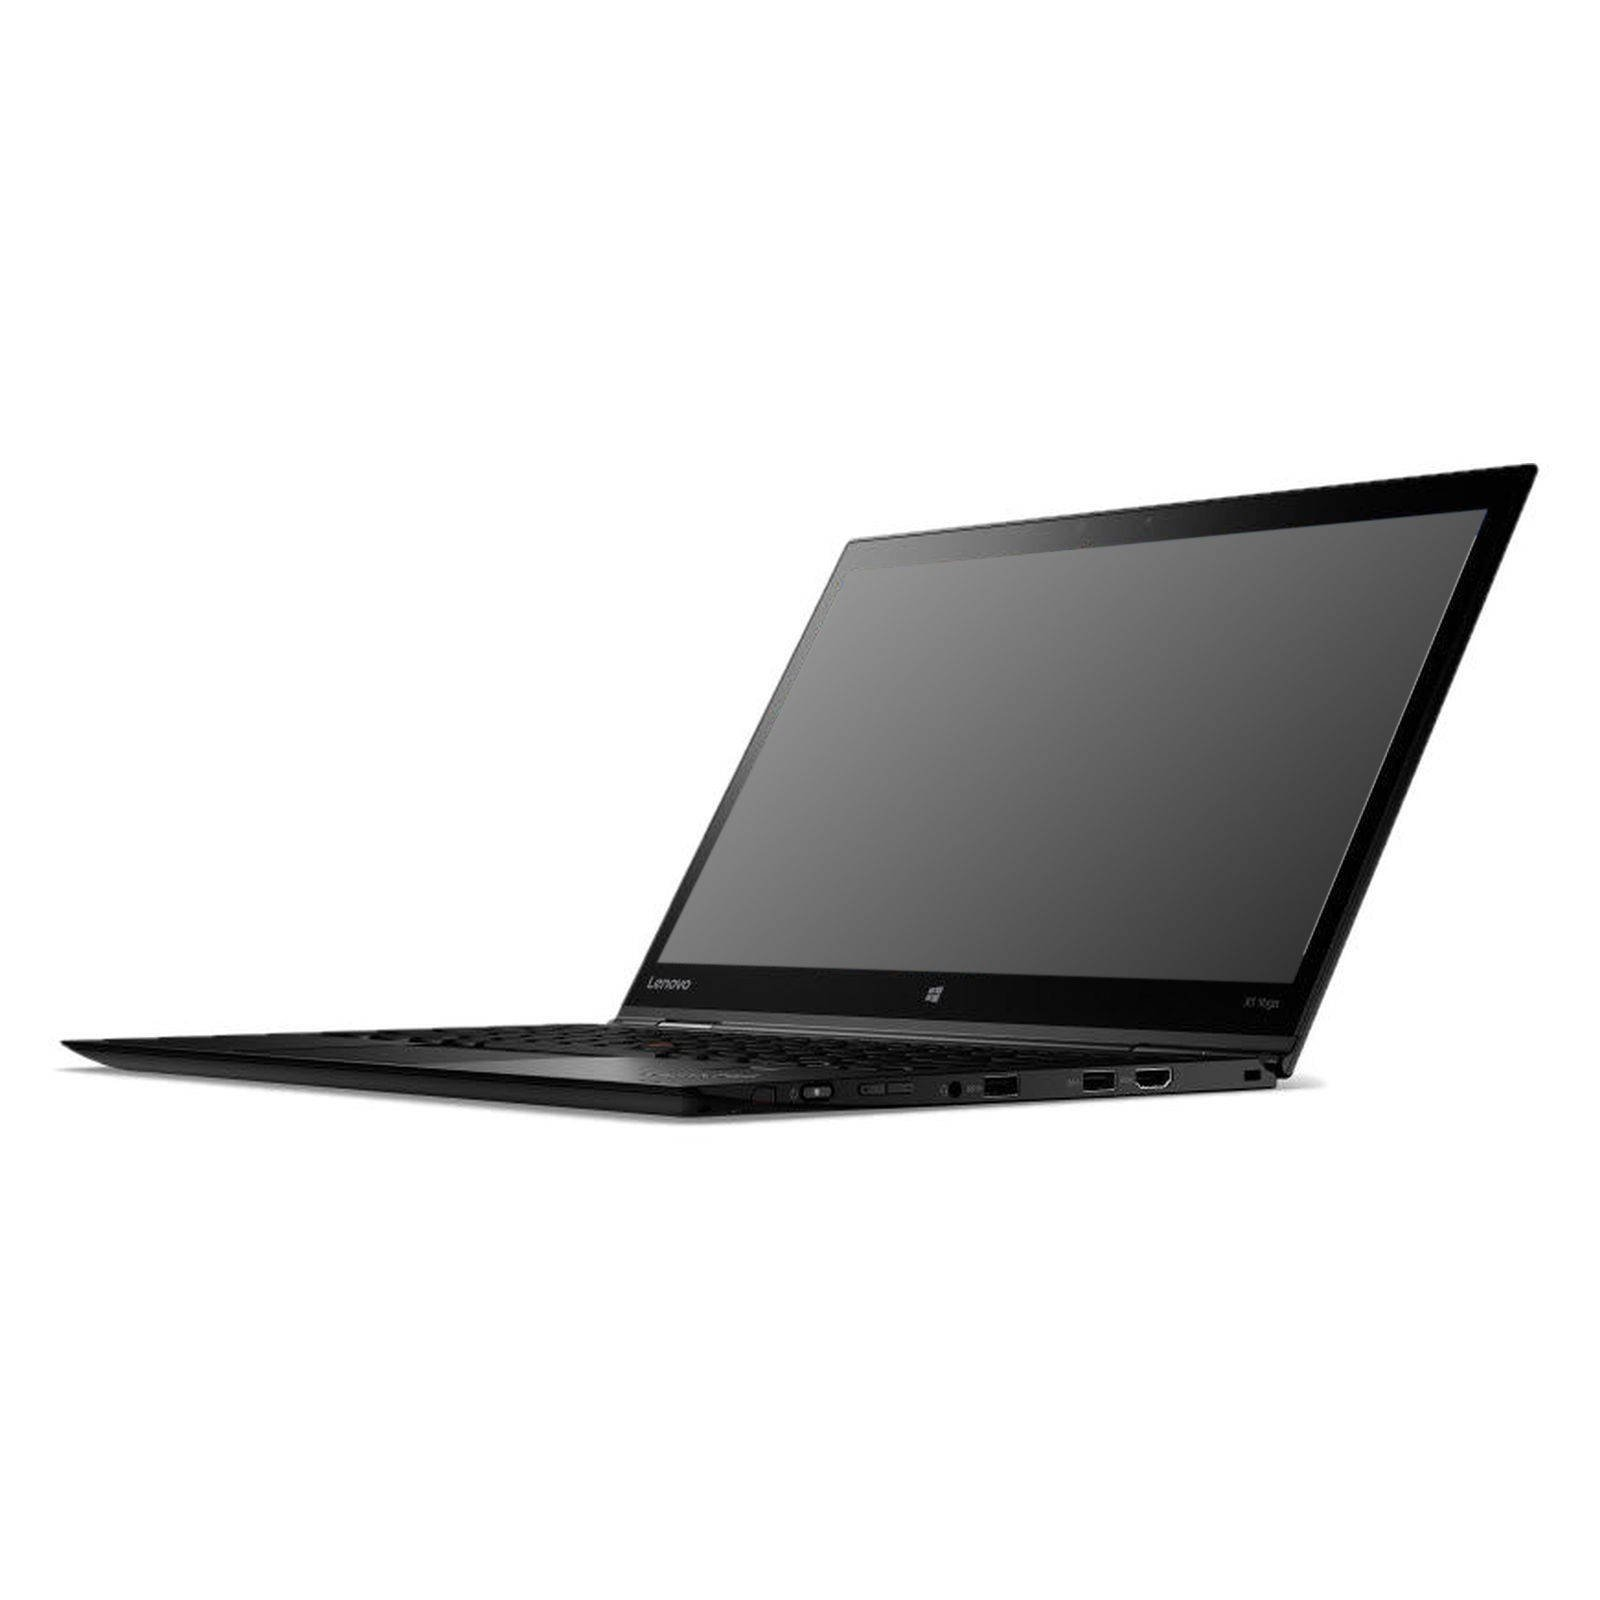 Lenovo ThinkPad Yoga do 3000 zł